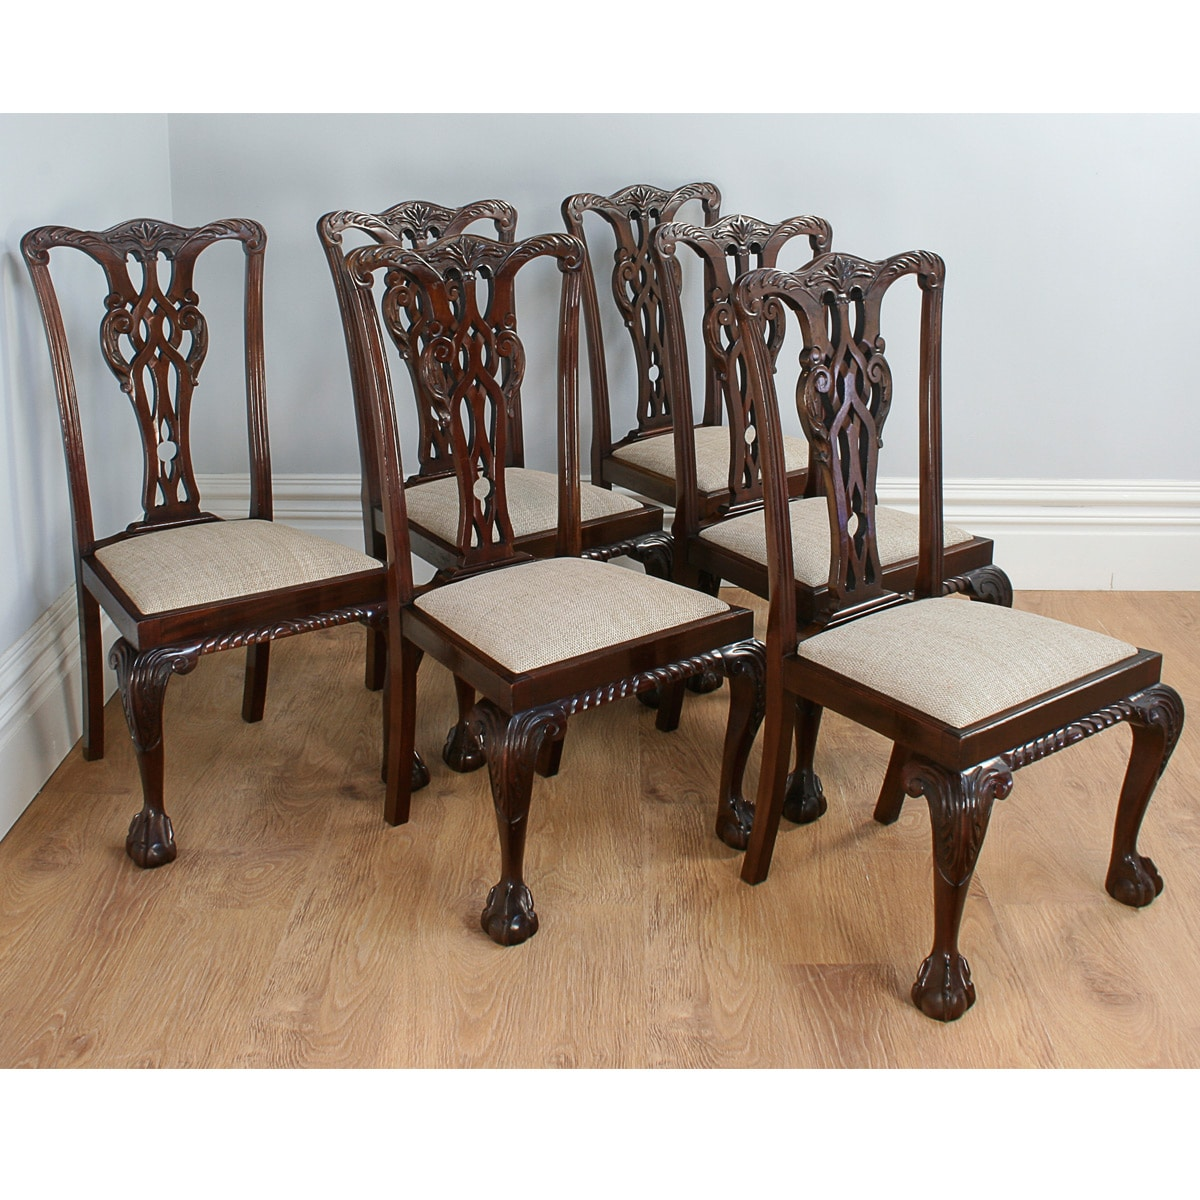 Antique English Set Of 6 Chippendale Style Carved Mahogany